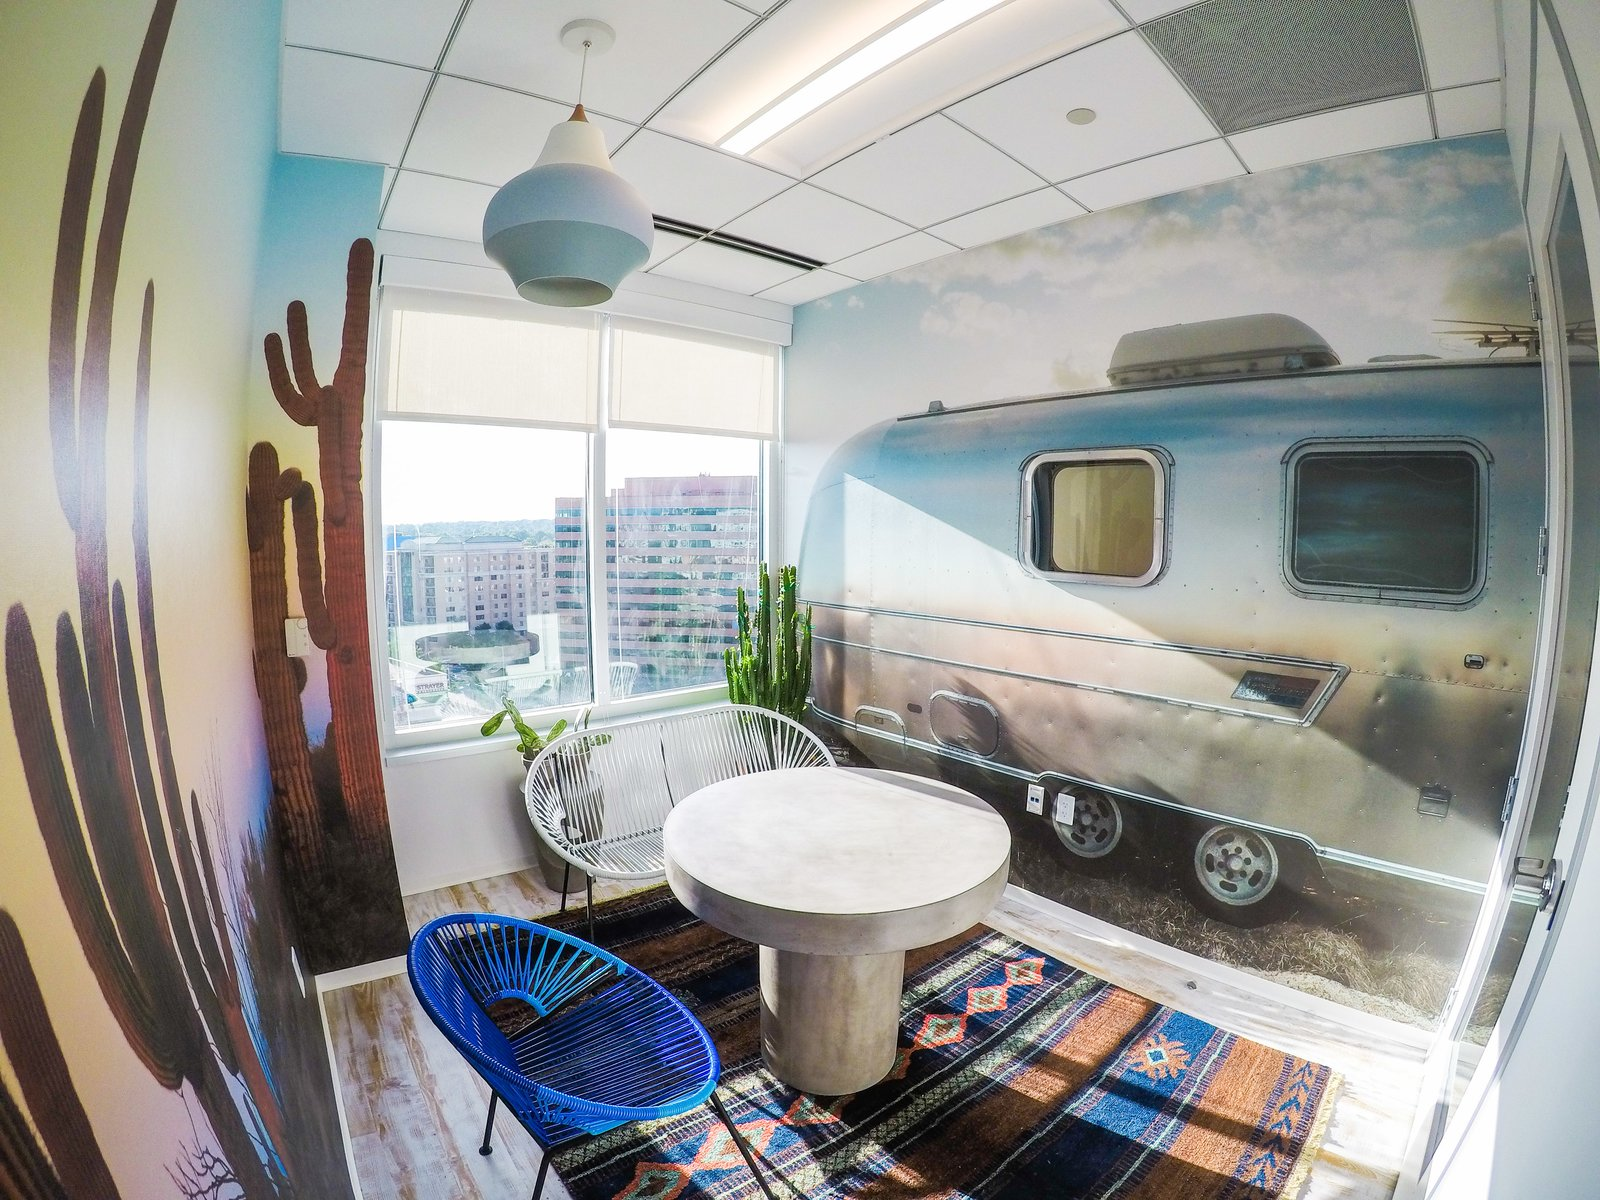 airstream-rv-room-for-meetings-designed-with-inspiration-from-the-companys-founder-joel-holland.jpg